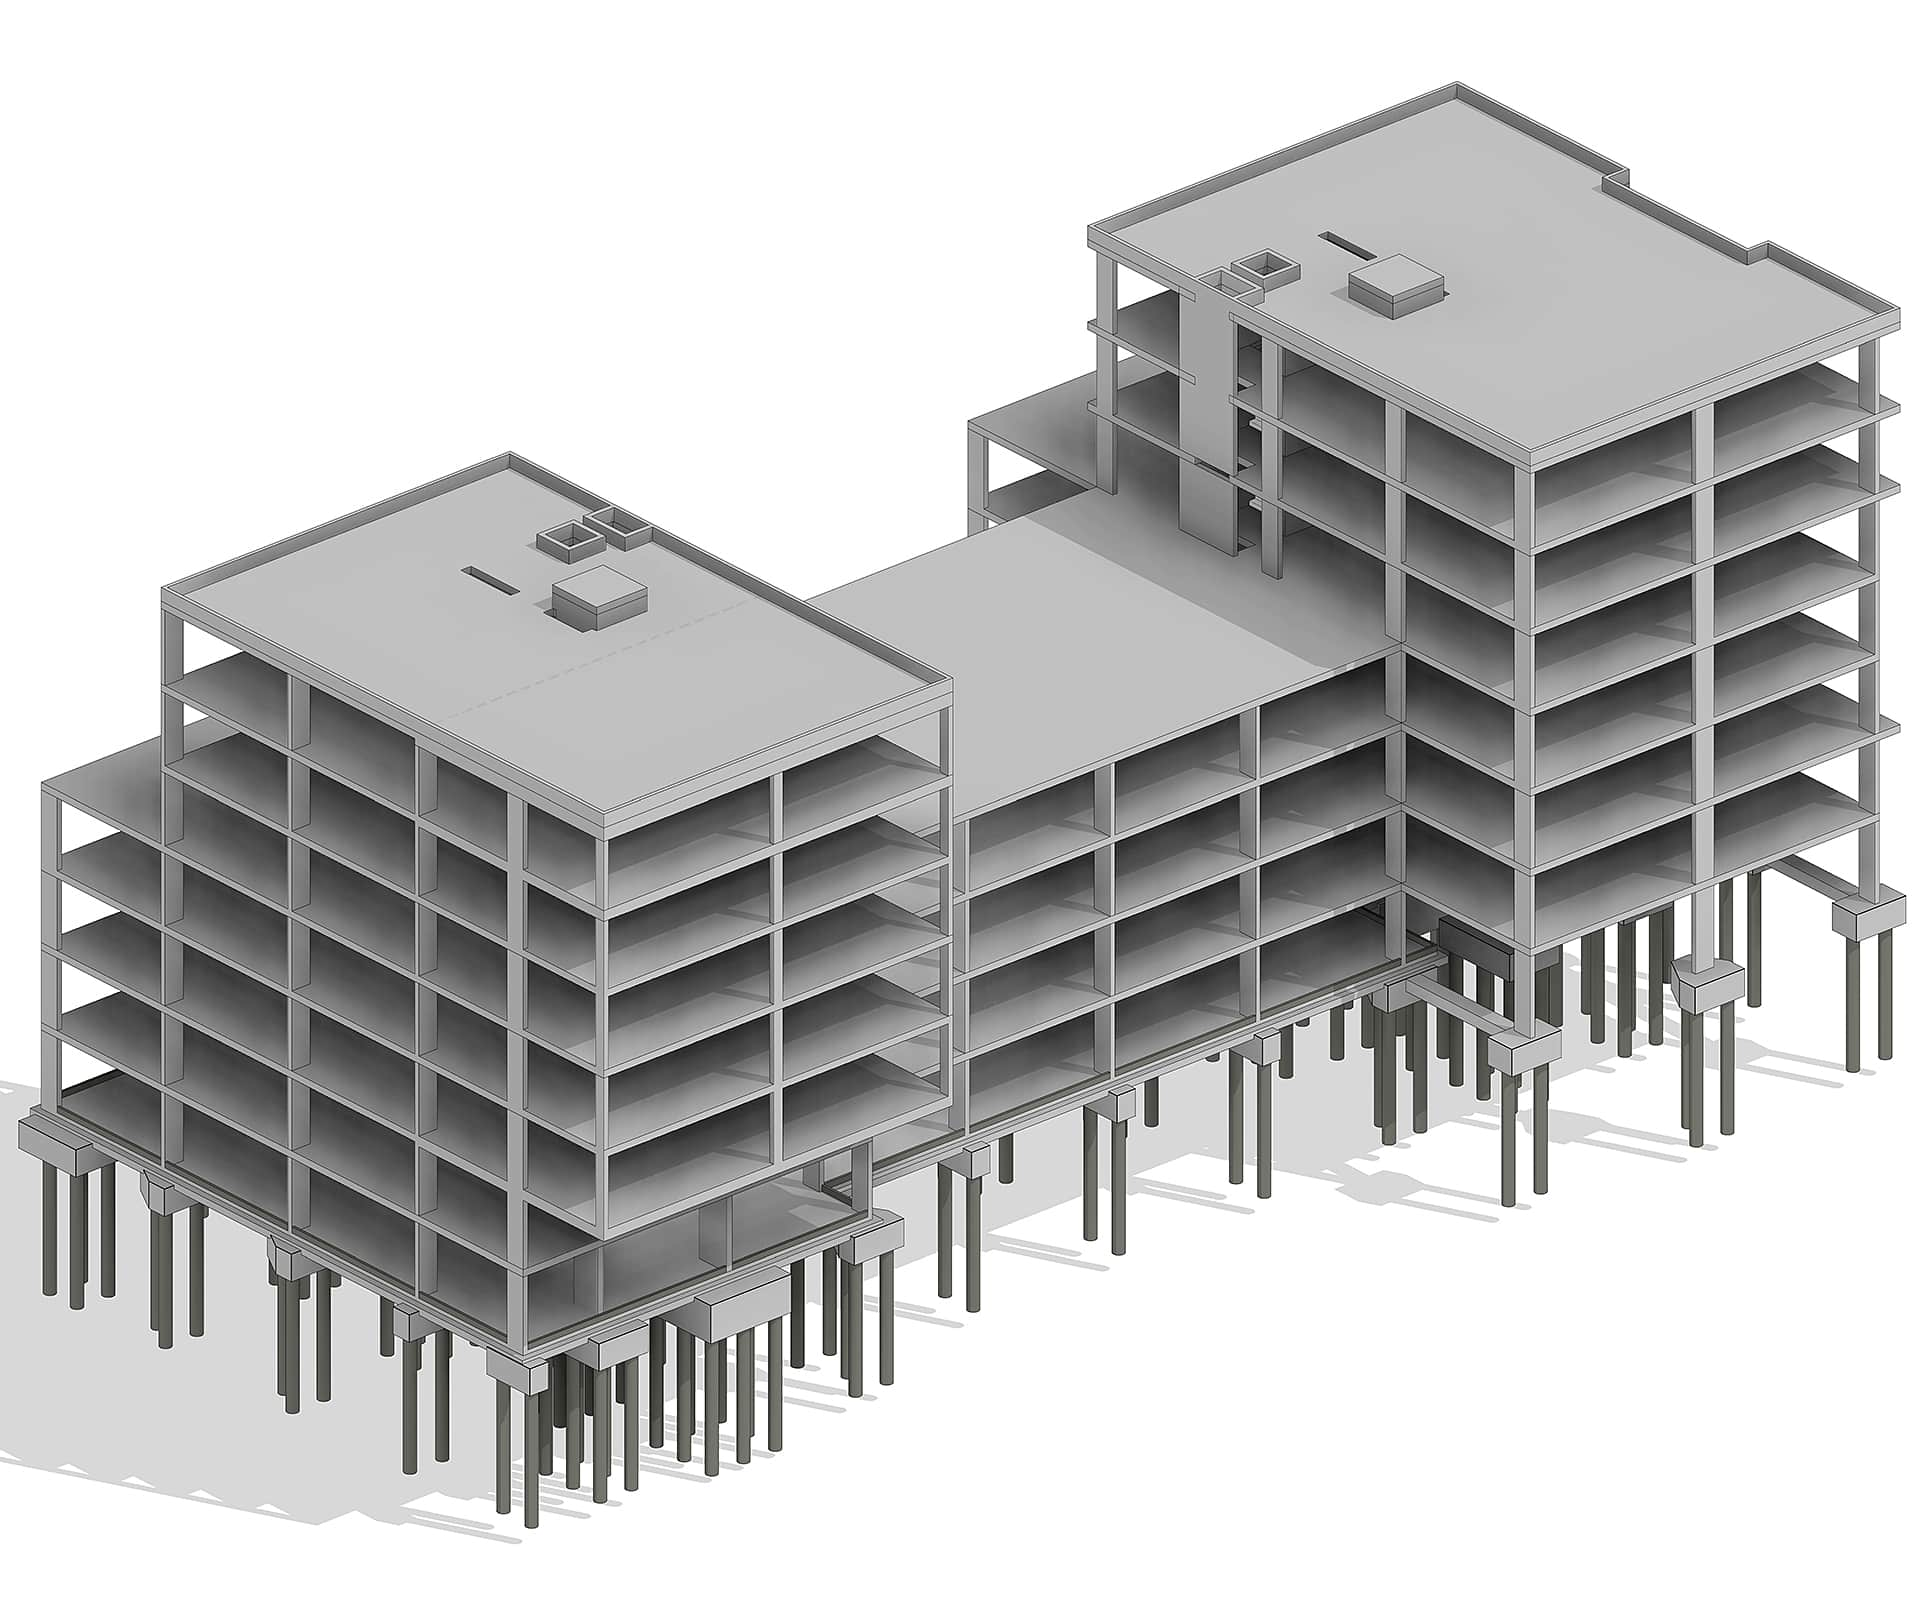 Tejjy   Structural Modeling Companies